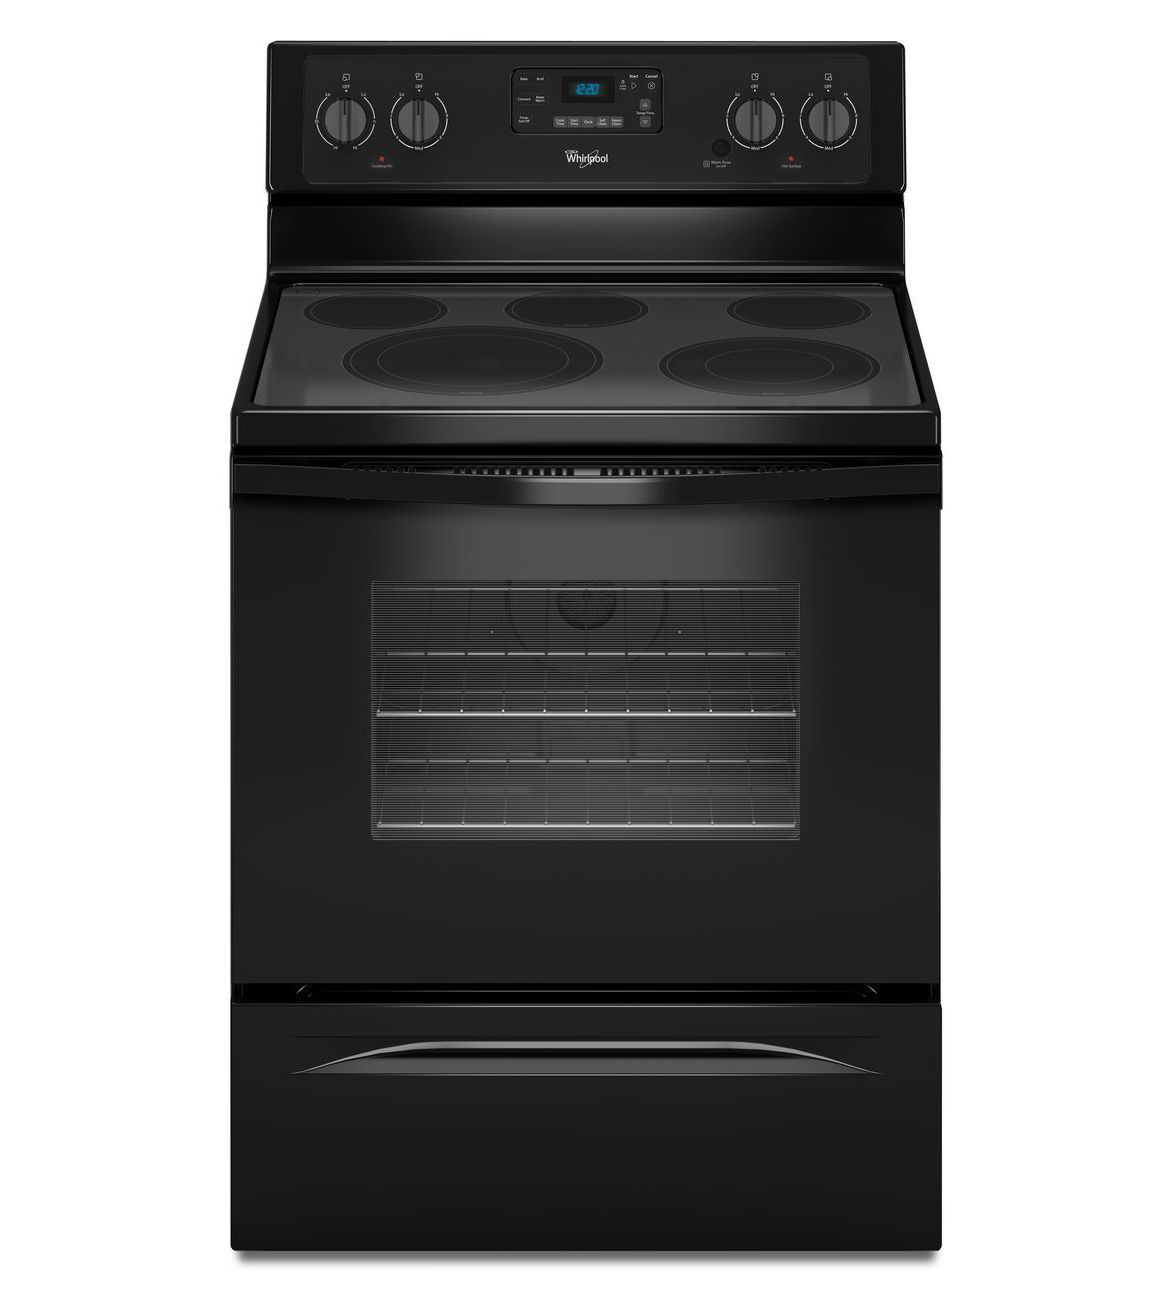 5 3 Cu Ft Freestanding Electric Range With High Heat Self Cleaning System Self Cleaning Ovens Cleaning Glass Cooktop